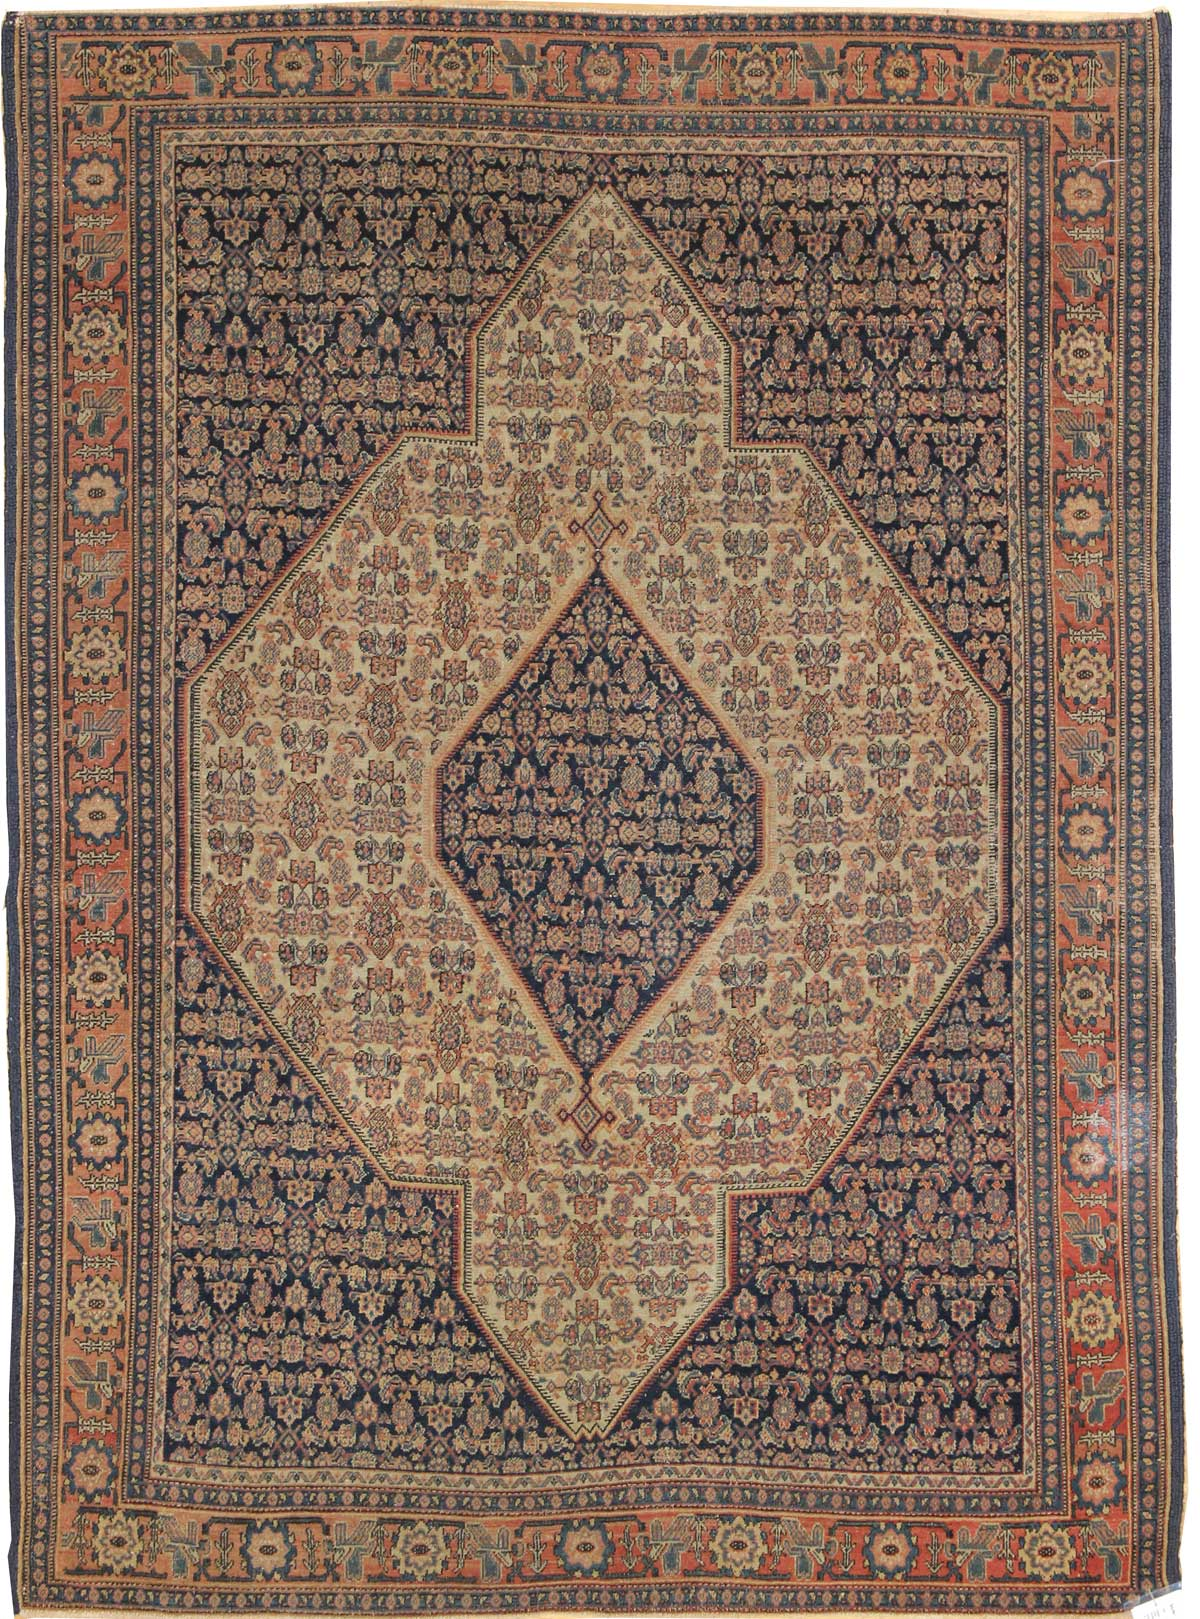 Antique Senneh Handwoven Traditional Rug